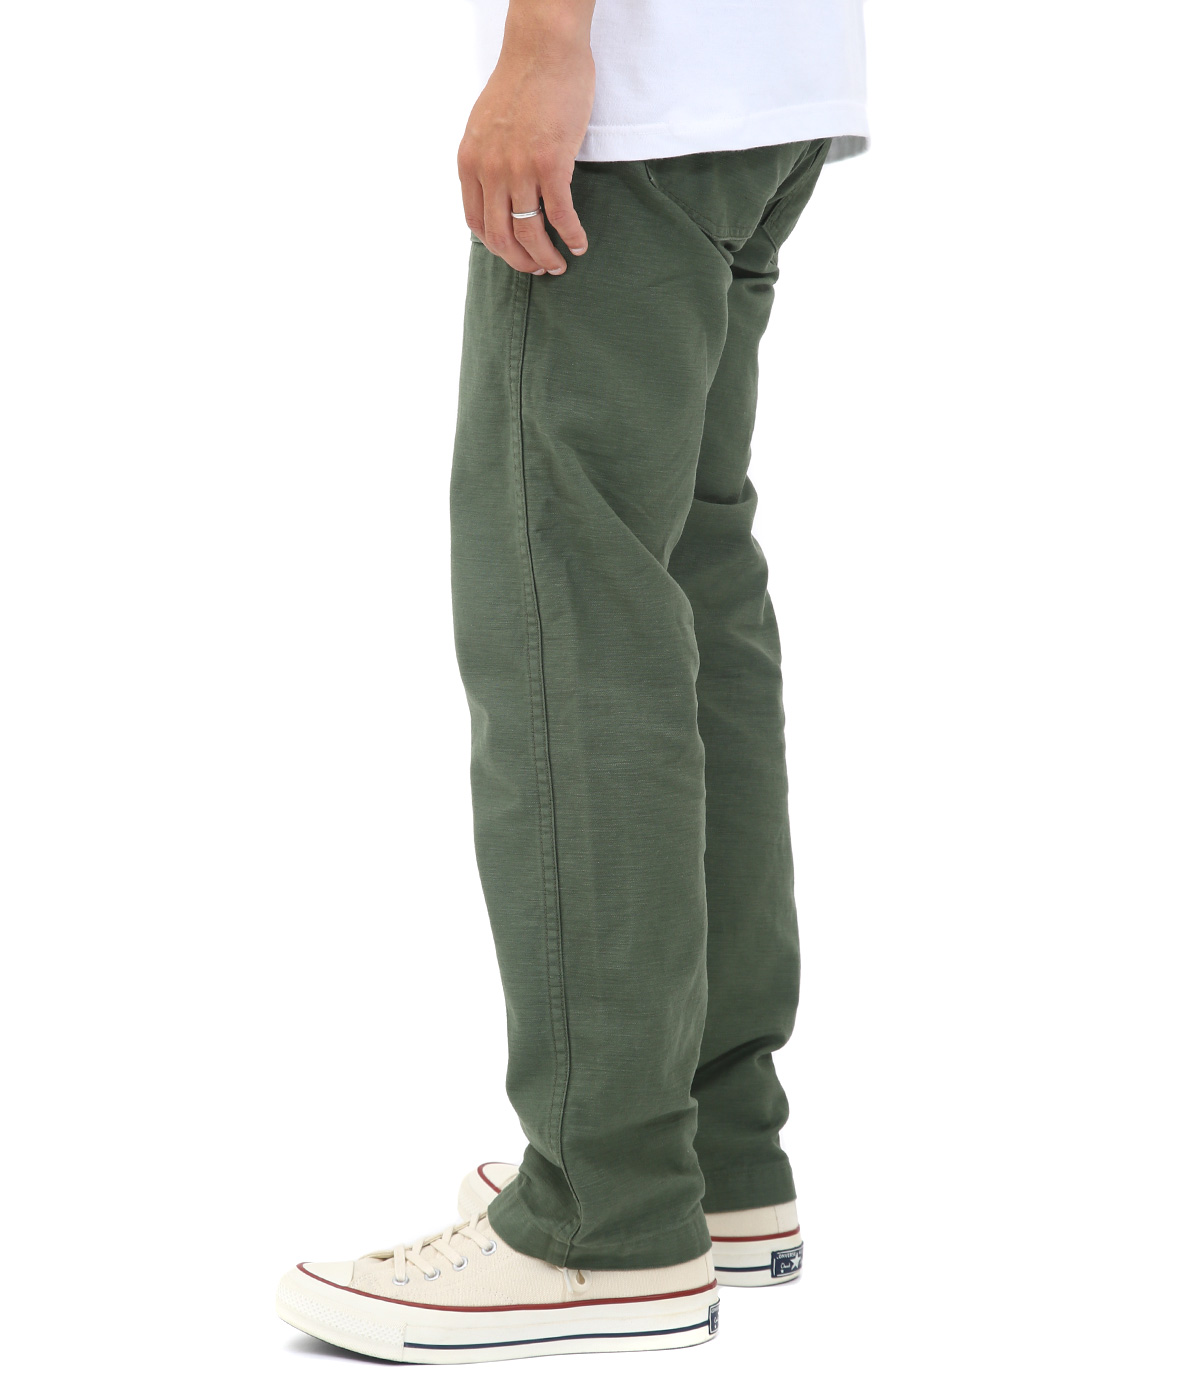 US SLIM FIT FATIGUE PANTS